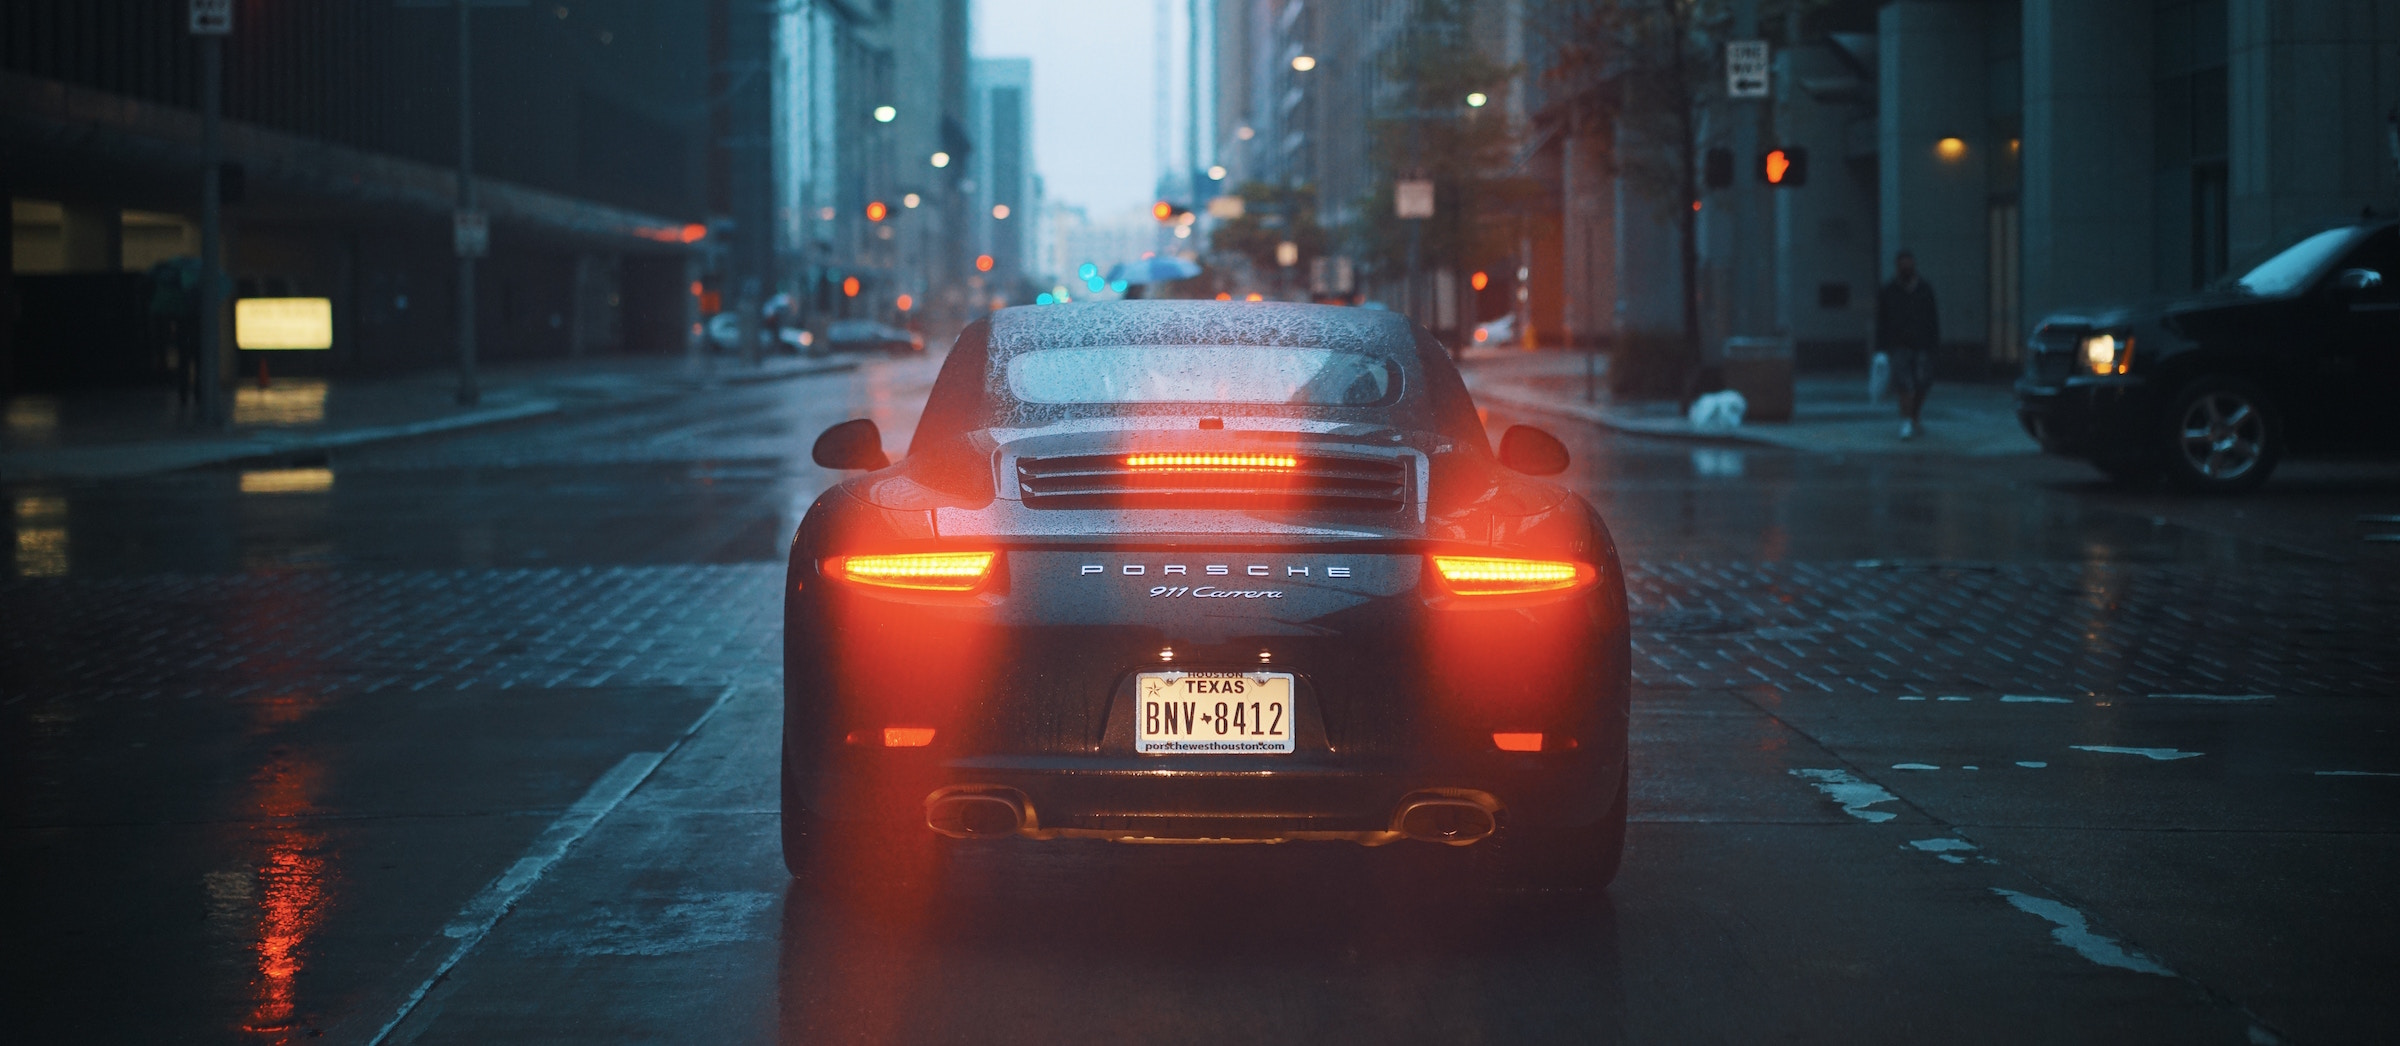 Porsche on rainy downtown road. OBD-II Port